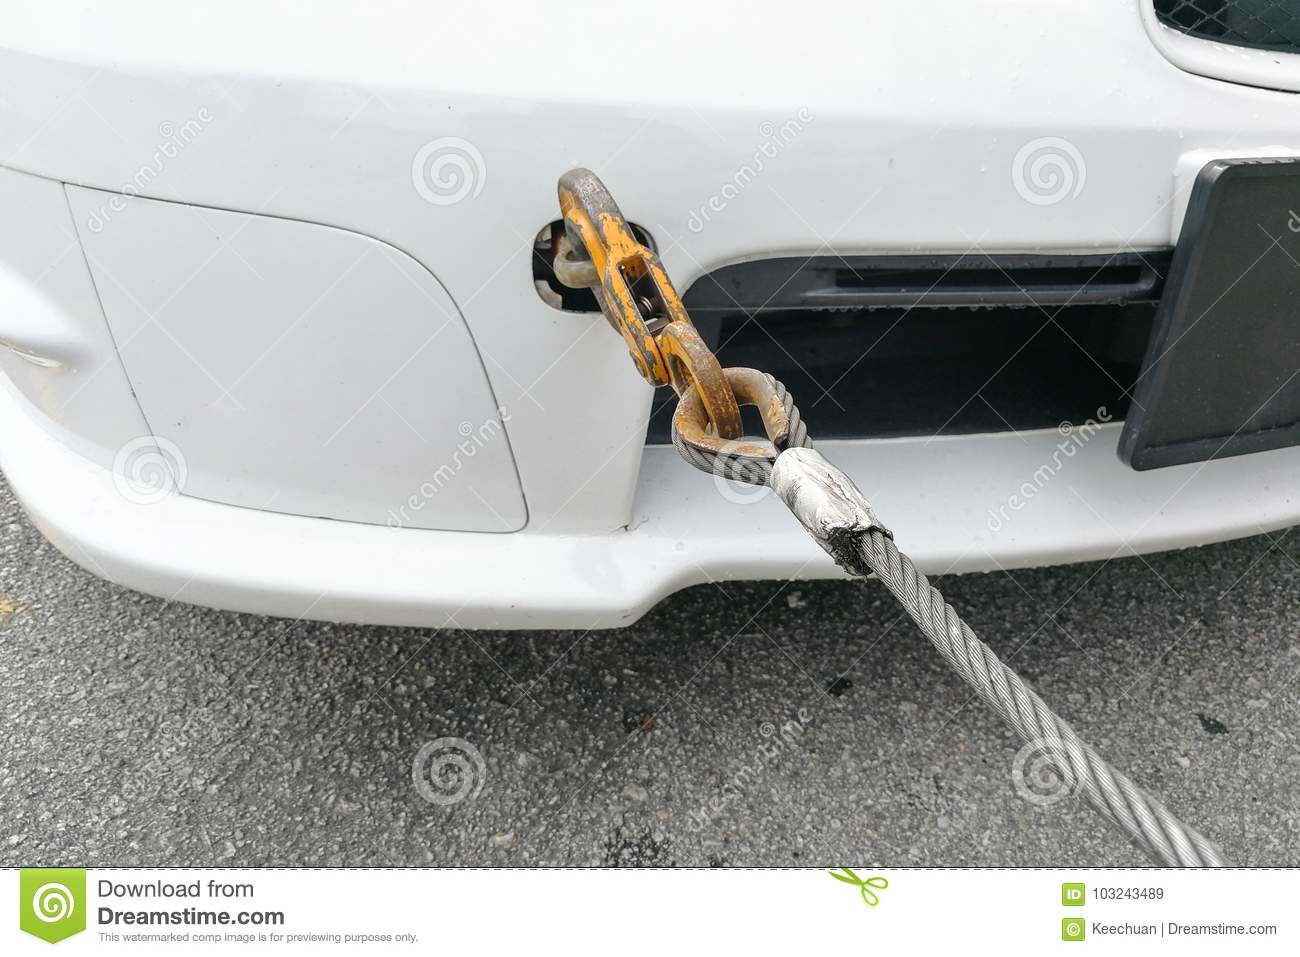 Broken down car fitted with hook and chain being towed